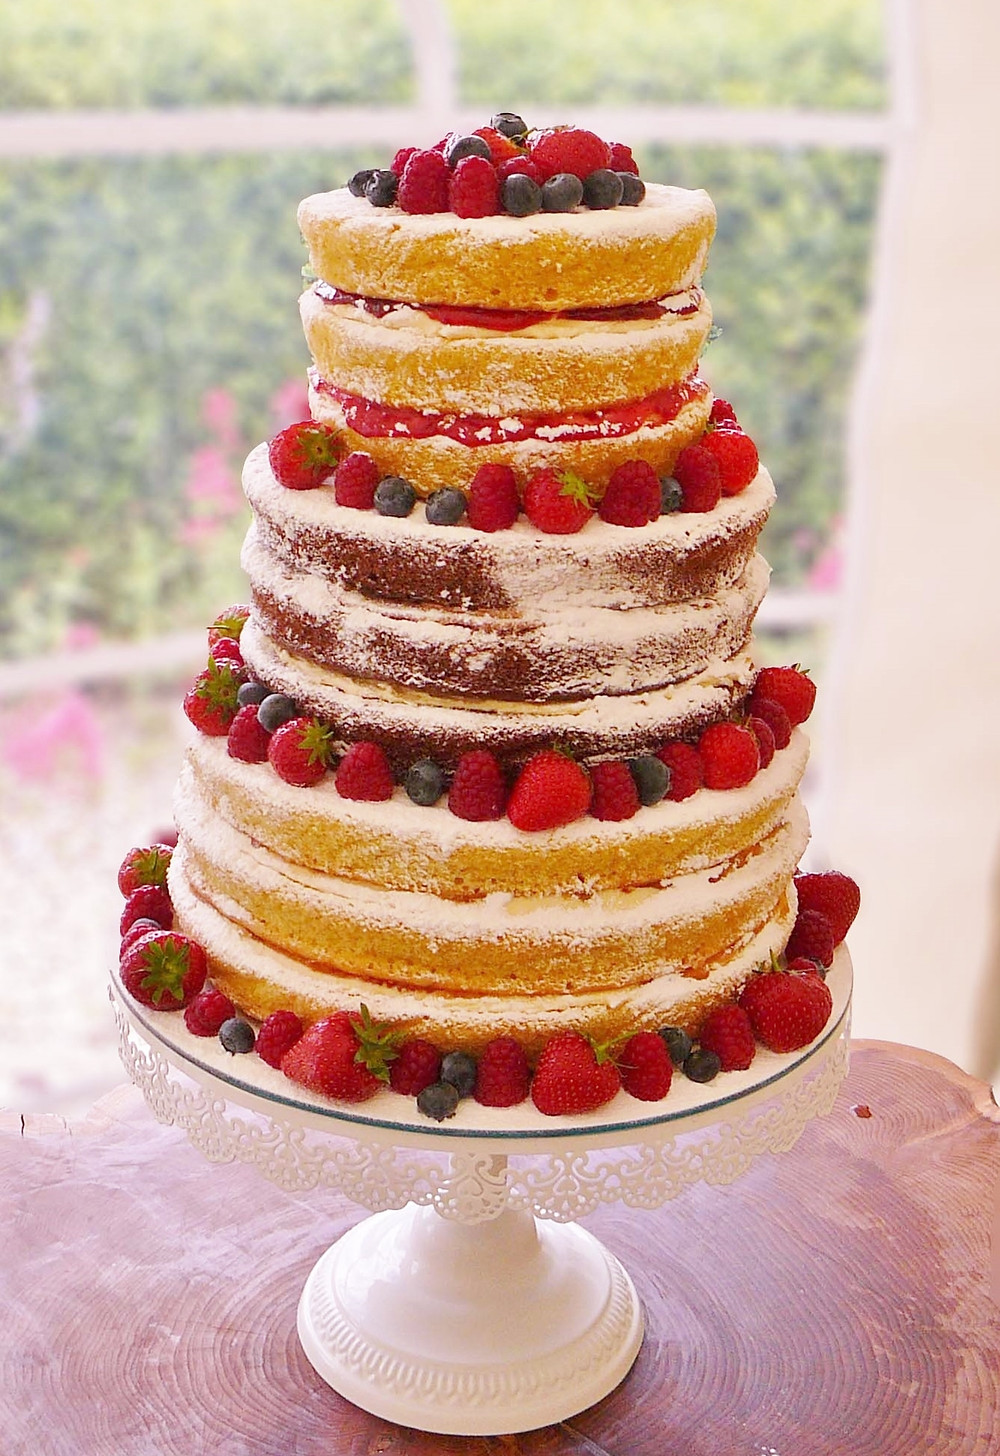 Plenty of fruit & no outside icing - that's the first step!